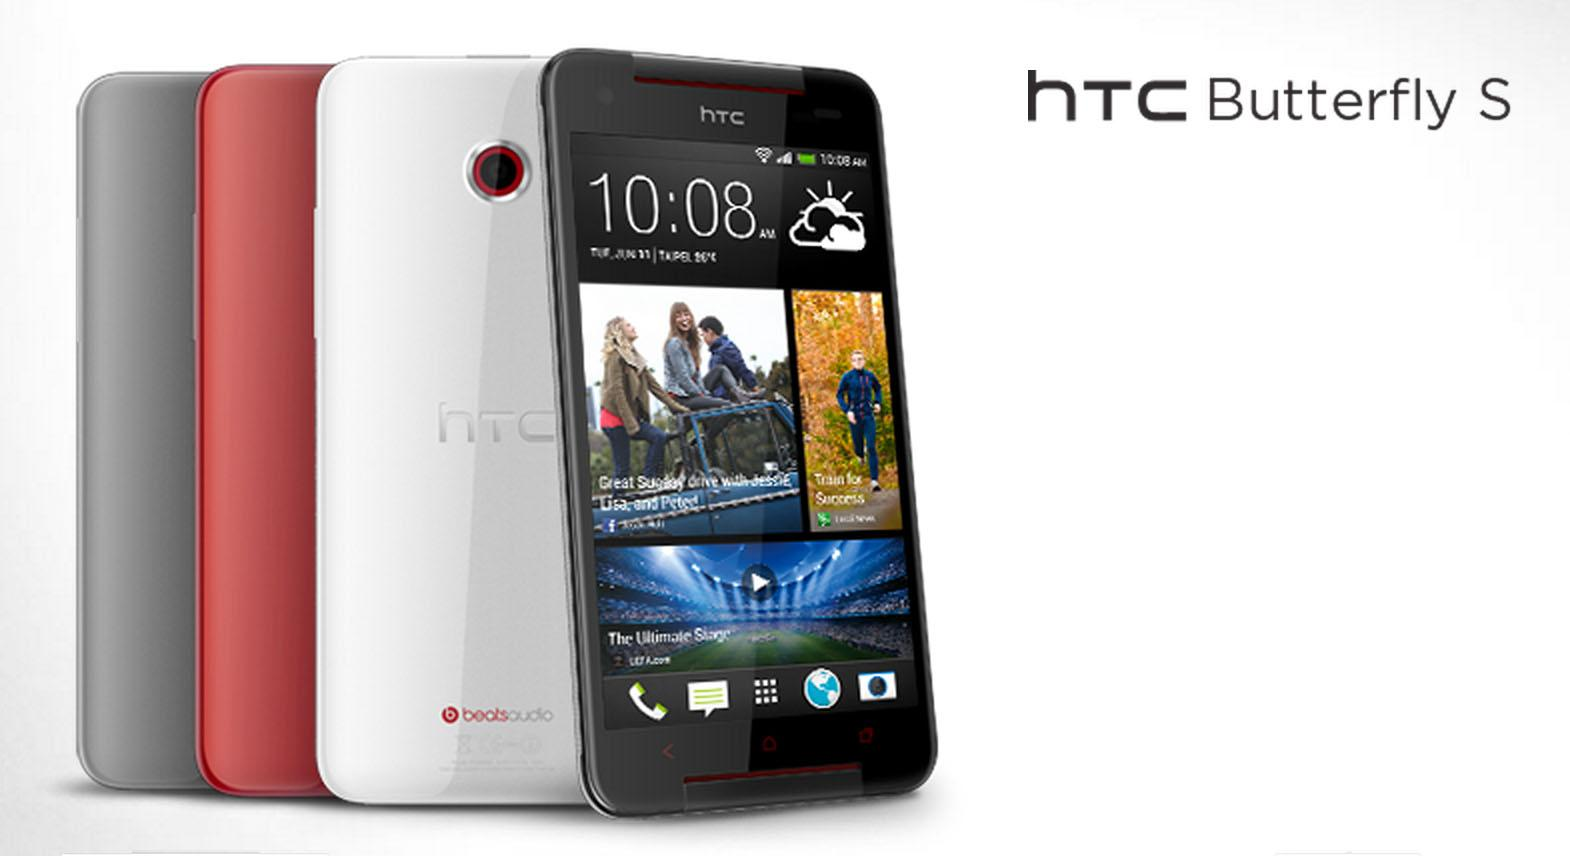 htc-butterfly-s-4g-lte-ori-set-sis-1yr-warranty-ready-stocks-abcphonedotcom-1308-08-abcphonedotcom-3.jpg